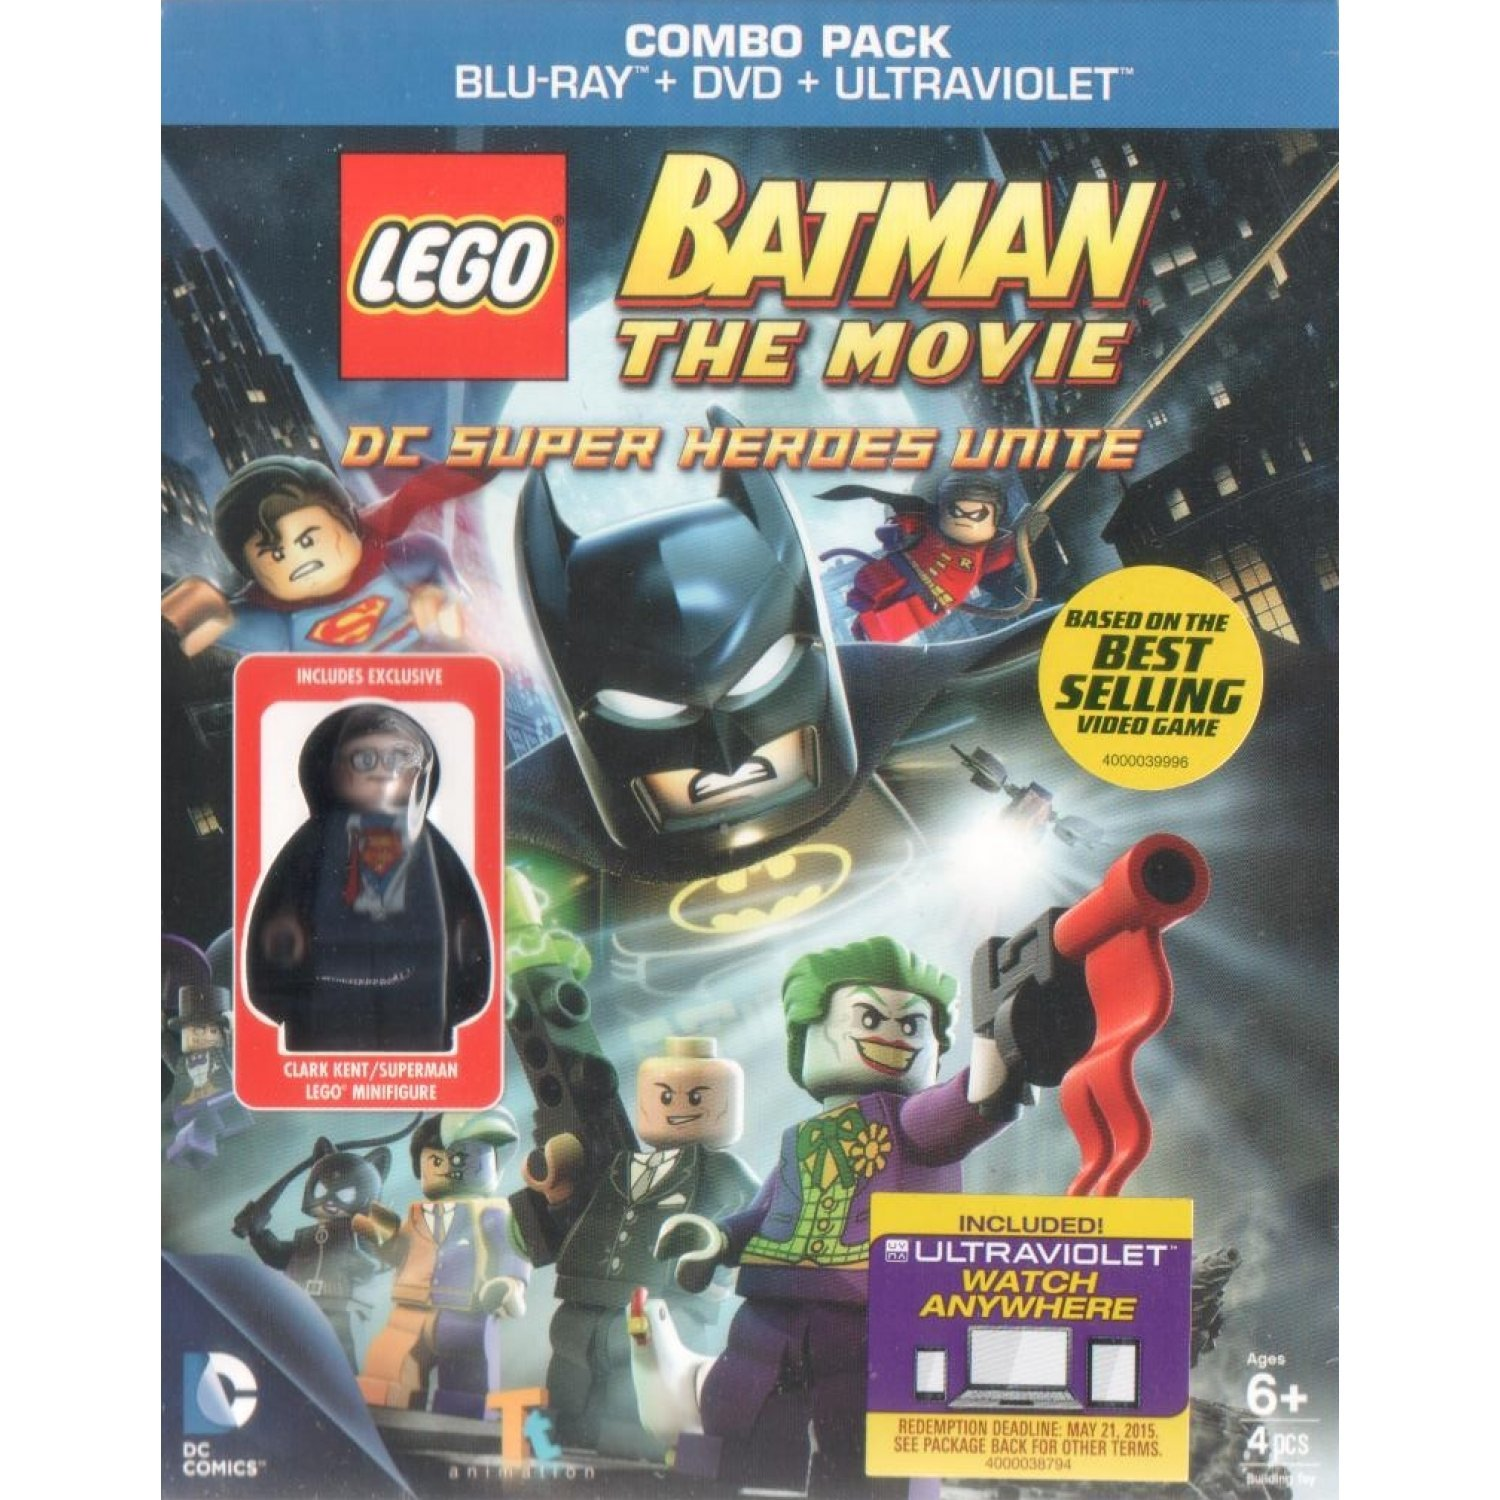 Lego batman the movie dc superheroes unite blu ray dvd - Super batman movie ...